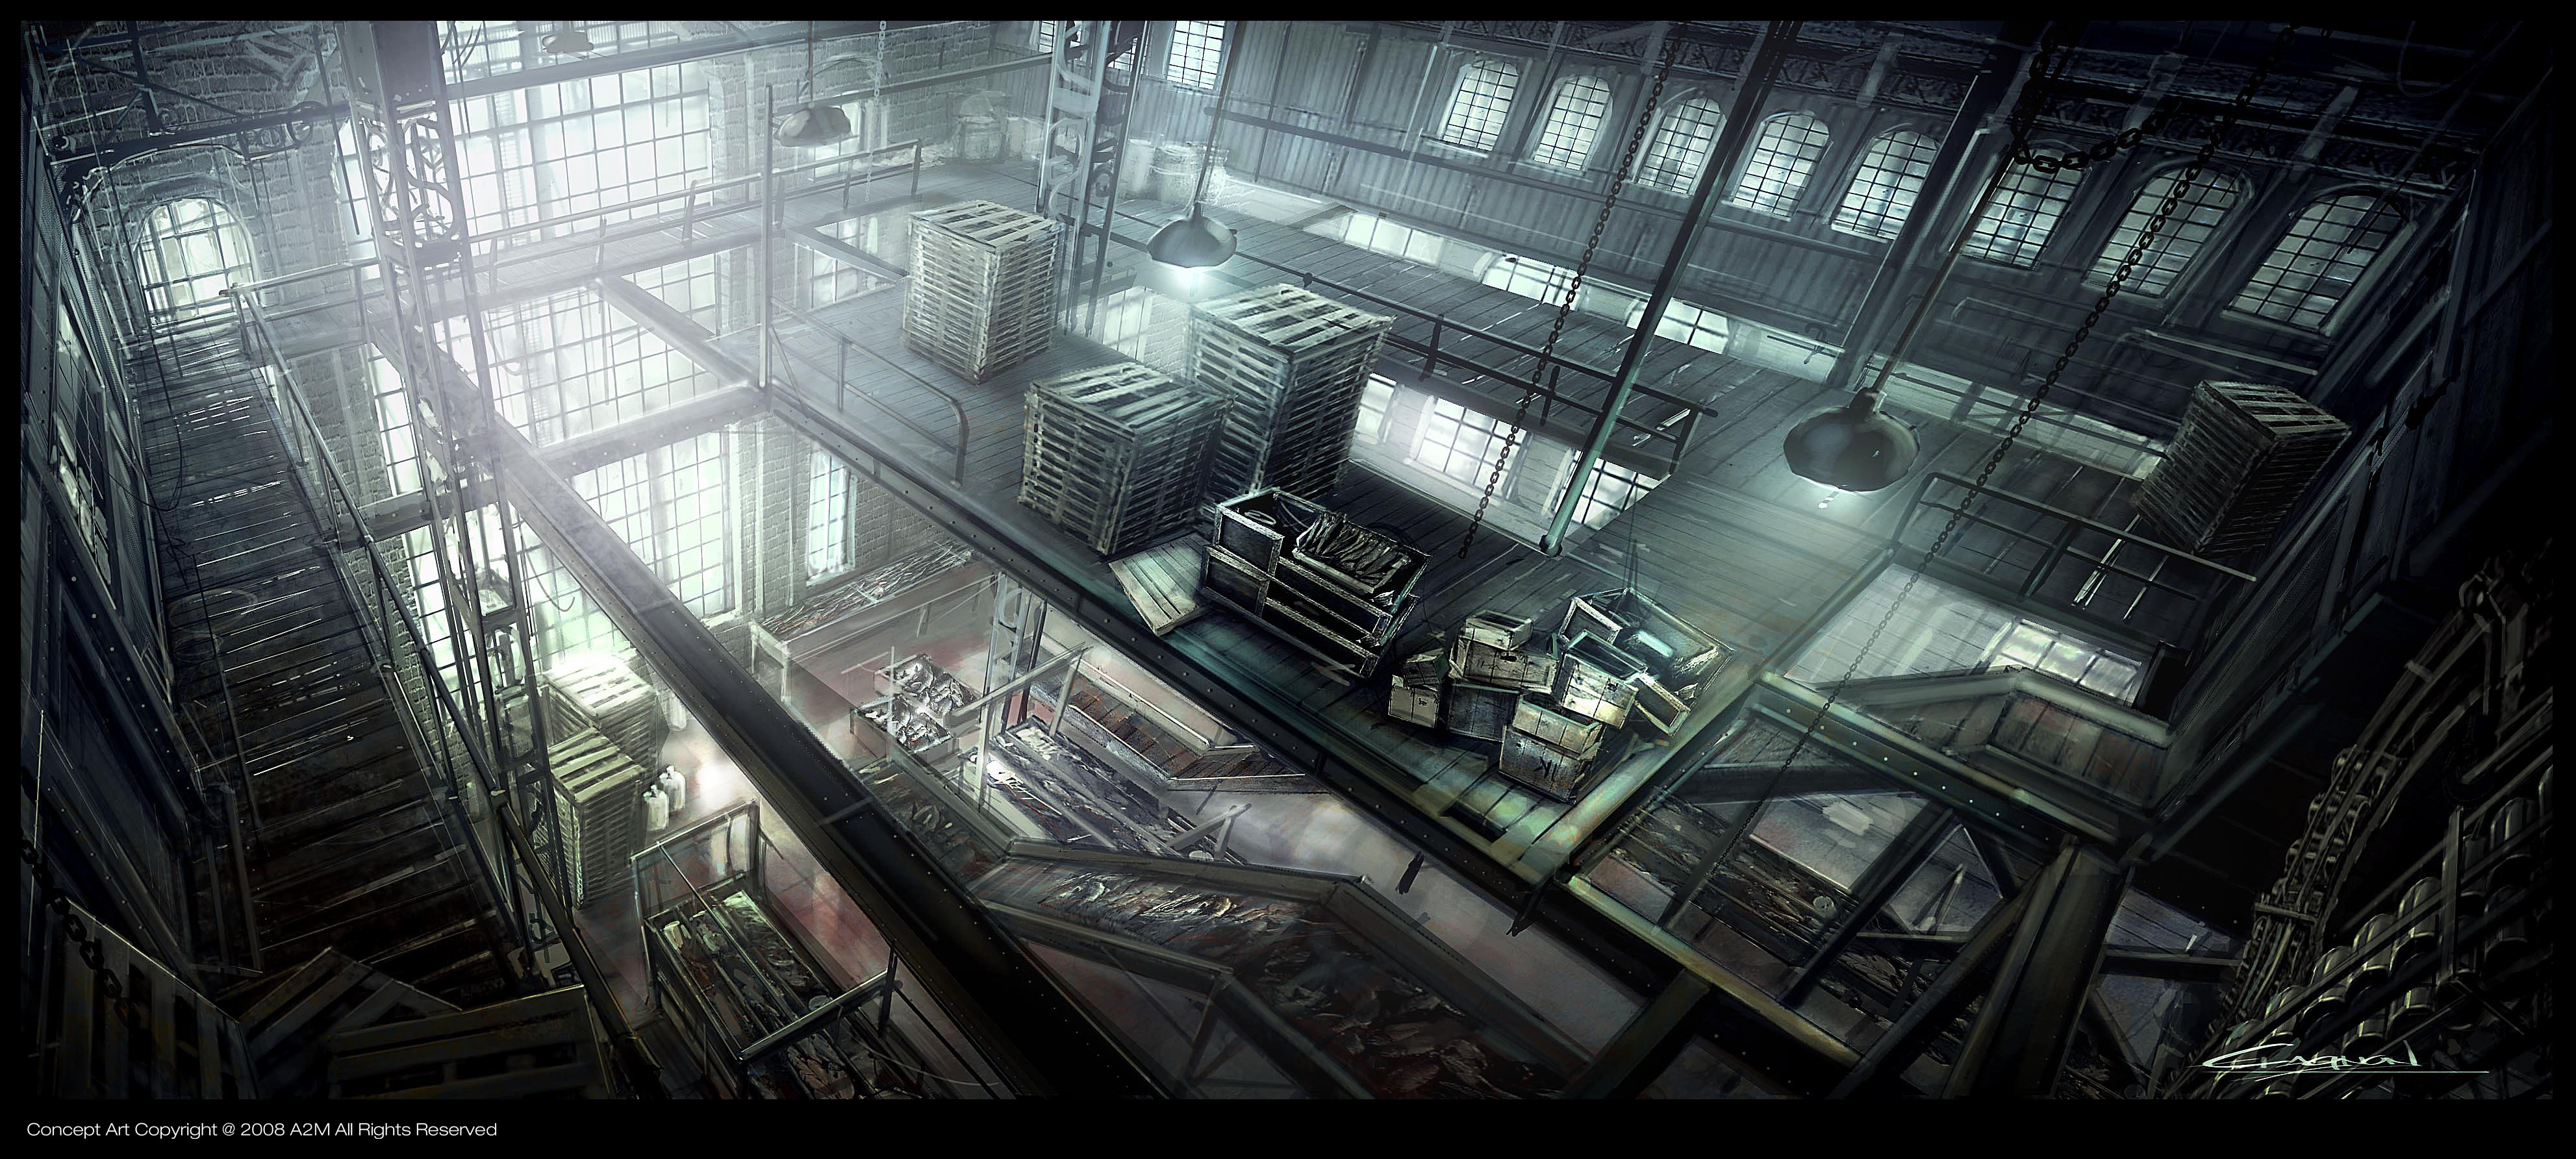 http://orig08.deviantart.net/6246/f/2009/304/7/d/inside_old_fish_cannery_by_gryphart.jpg